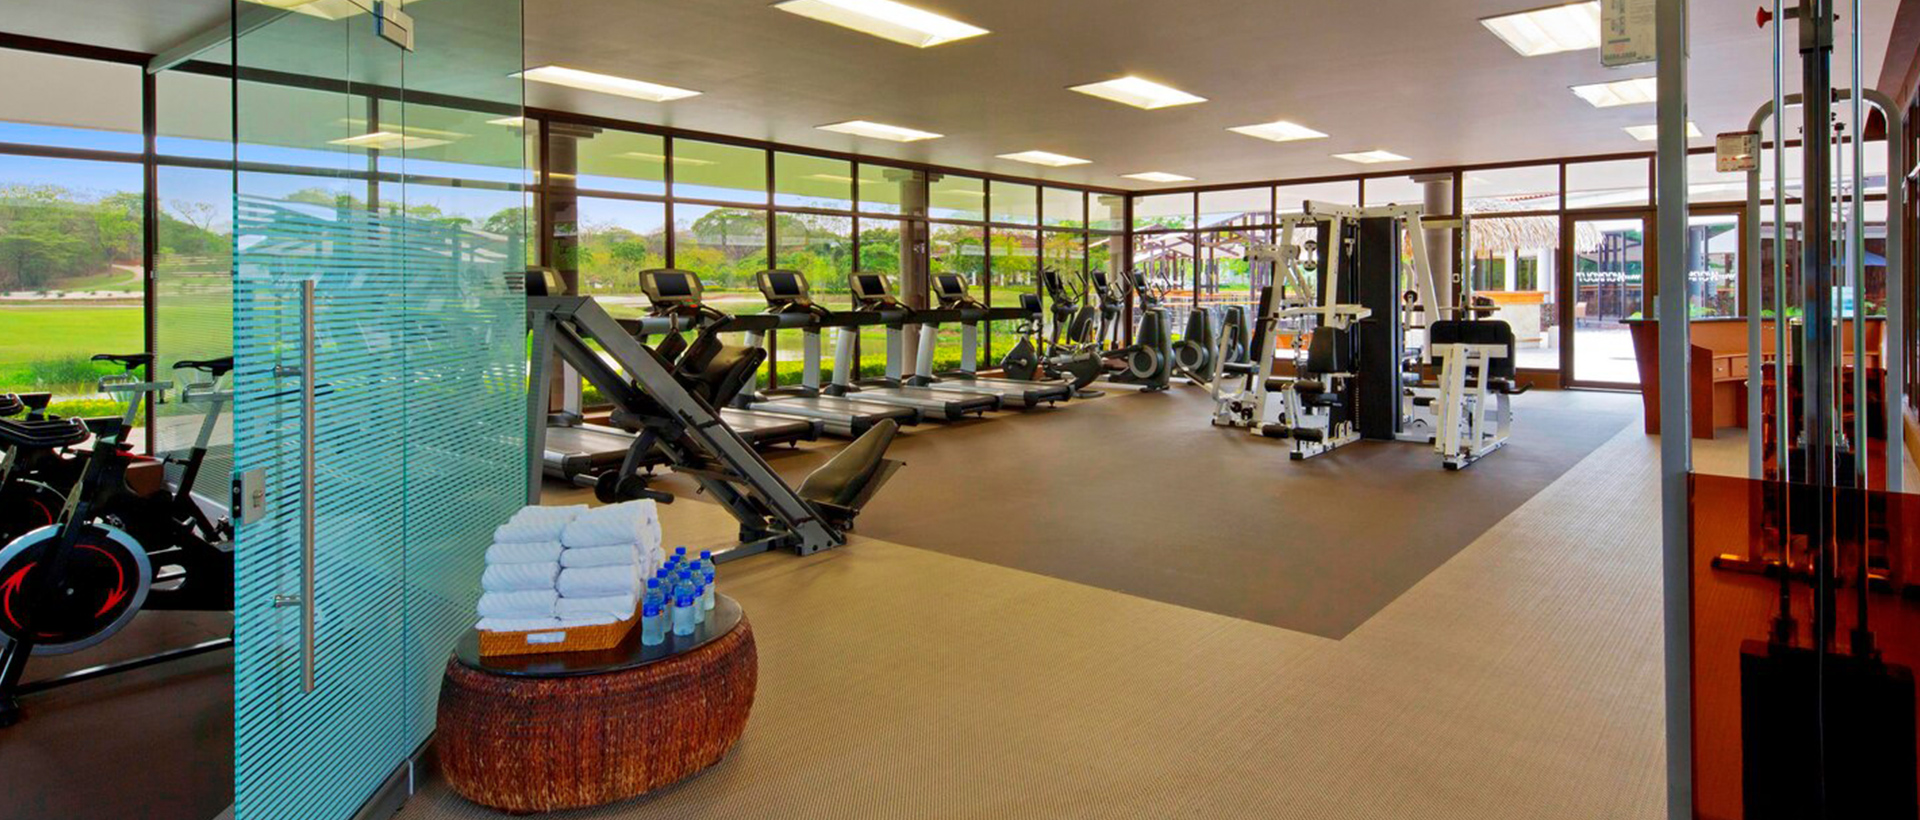 Westin WORKOUT® Fitness Studio at The Westin Reserva